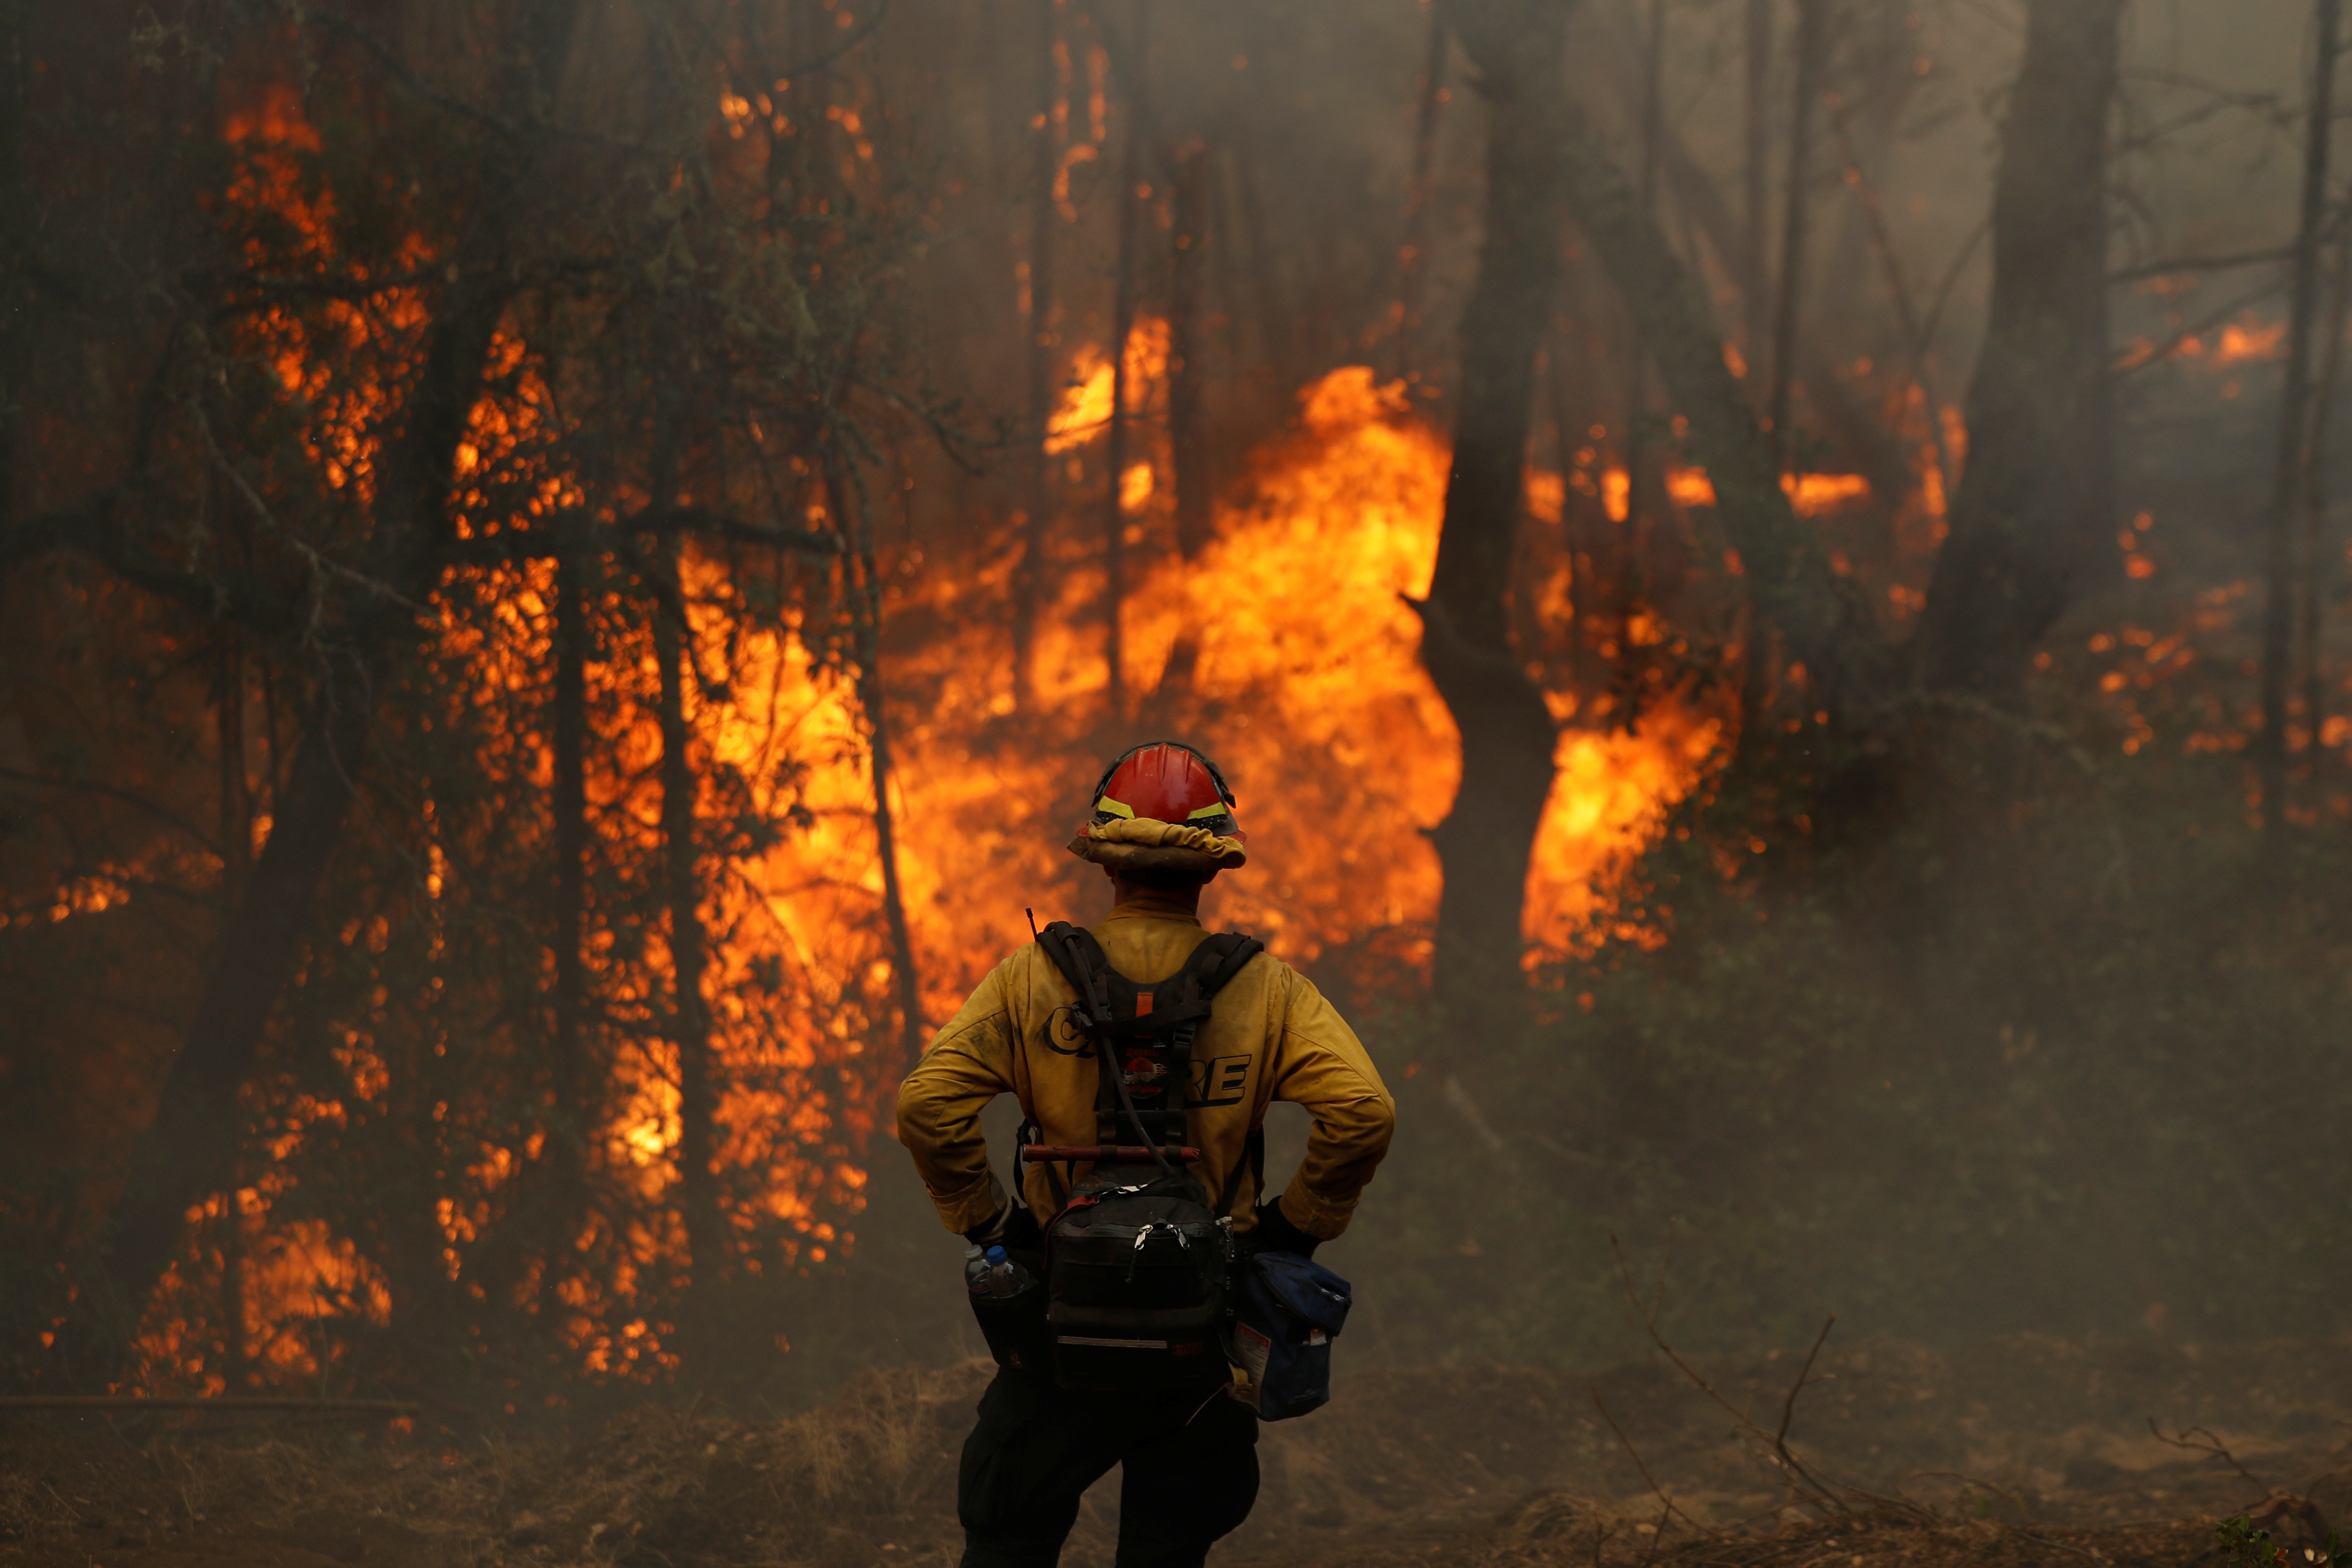 A Cal Fire firefighter monitors a firing operation while battling the Glass Fire in Calistoga, California, U.S. October 2, 2020.